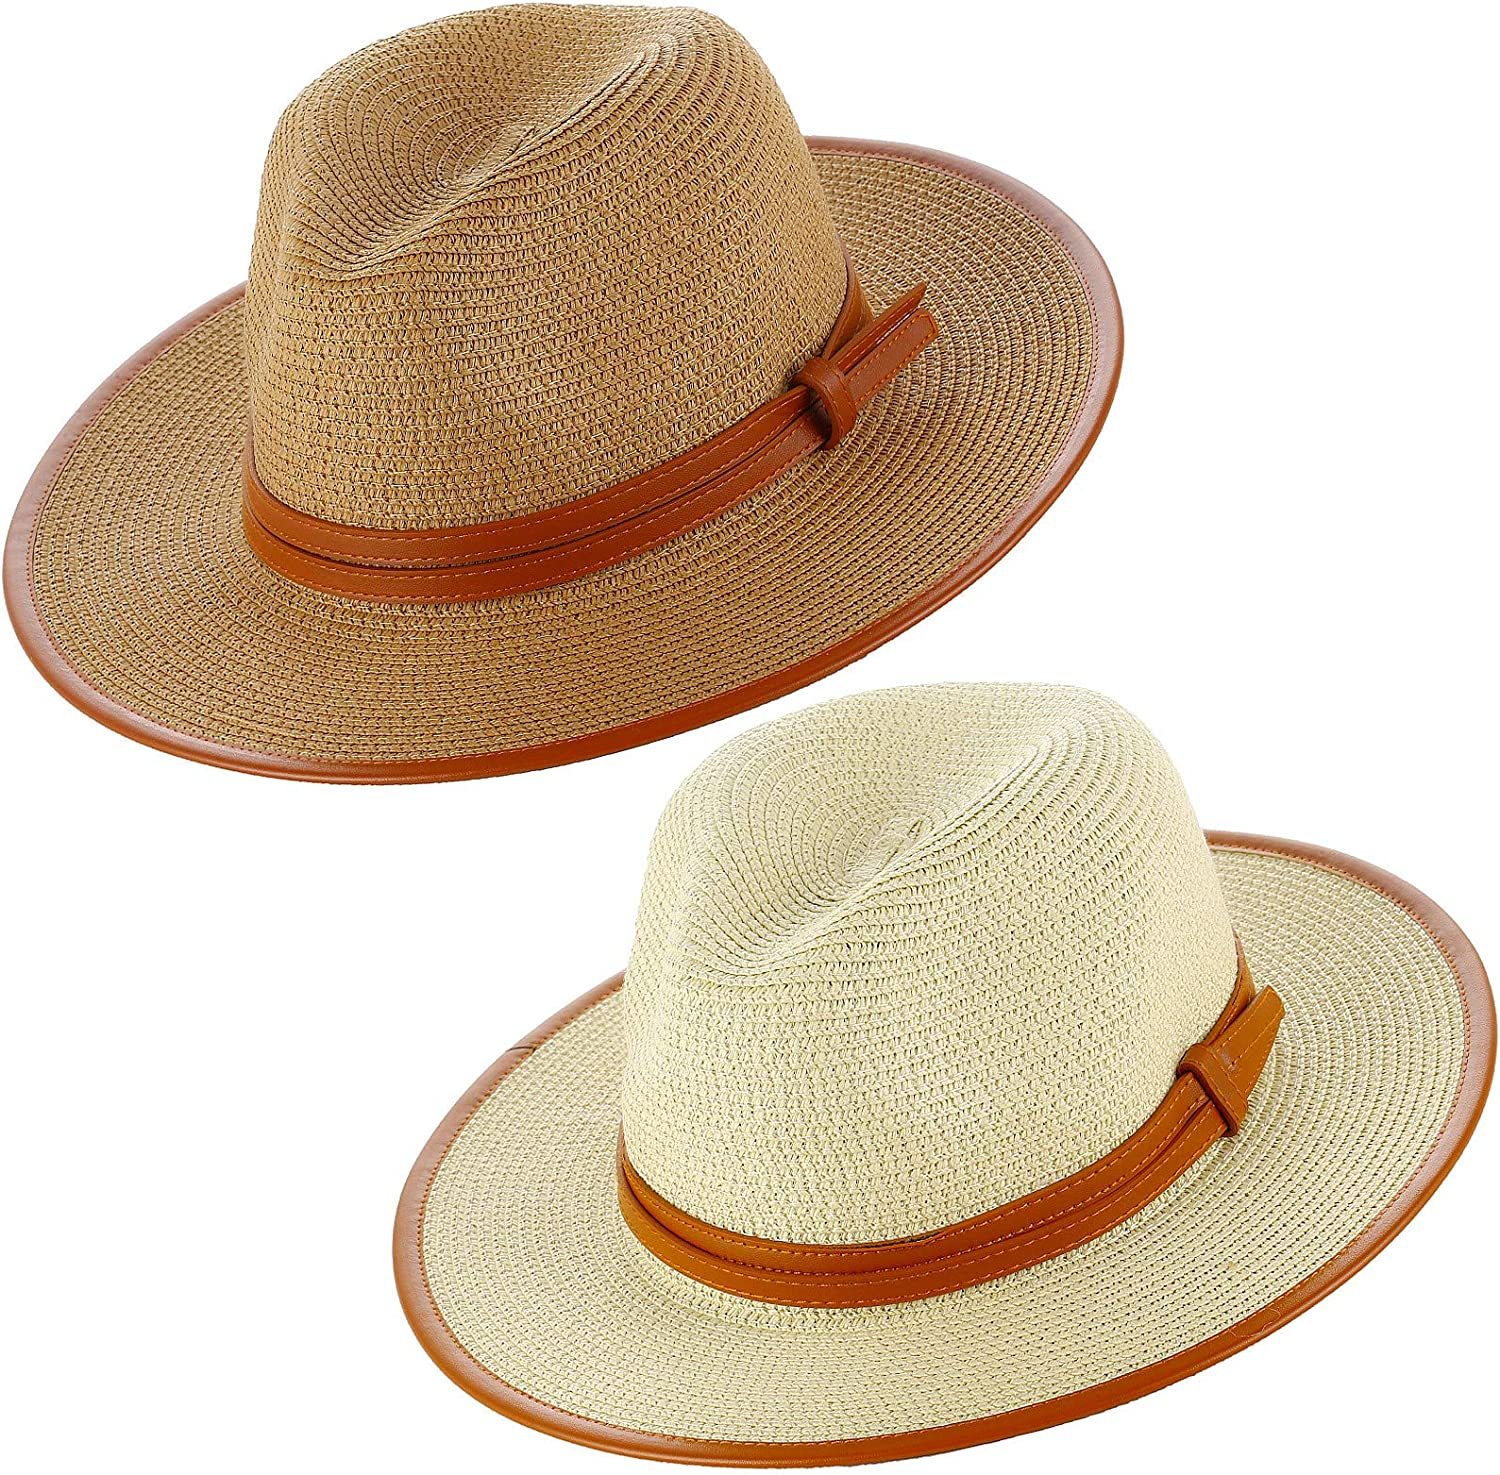 XANNOU 2 PCS Fedora Year-end gift Hats for Over item handling ☆ Hat Women Wide with Brim Be